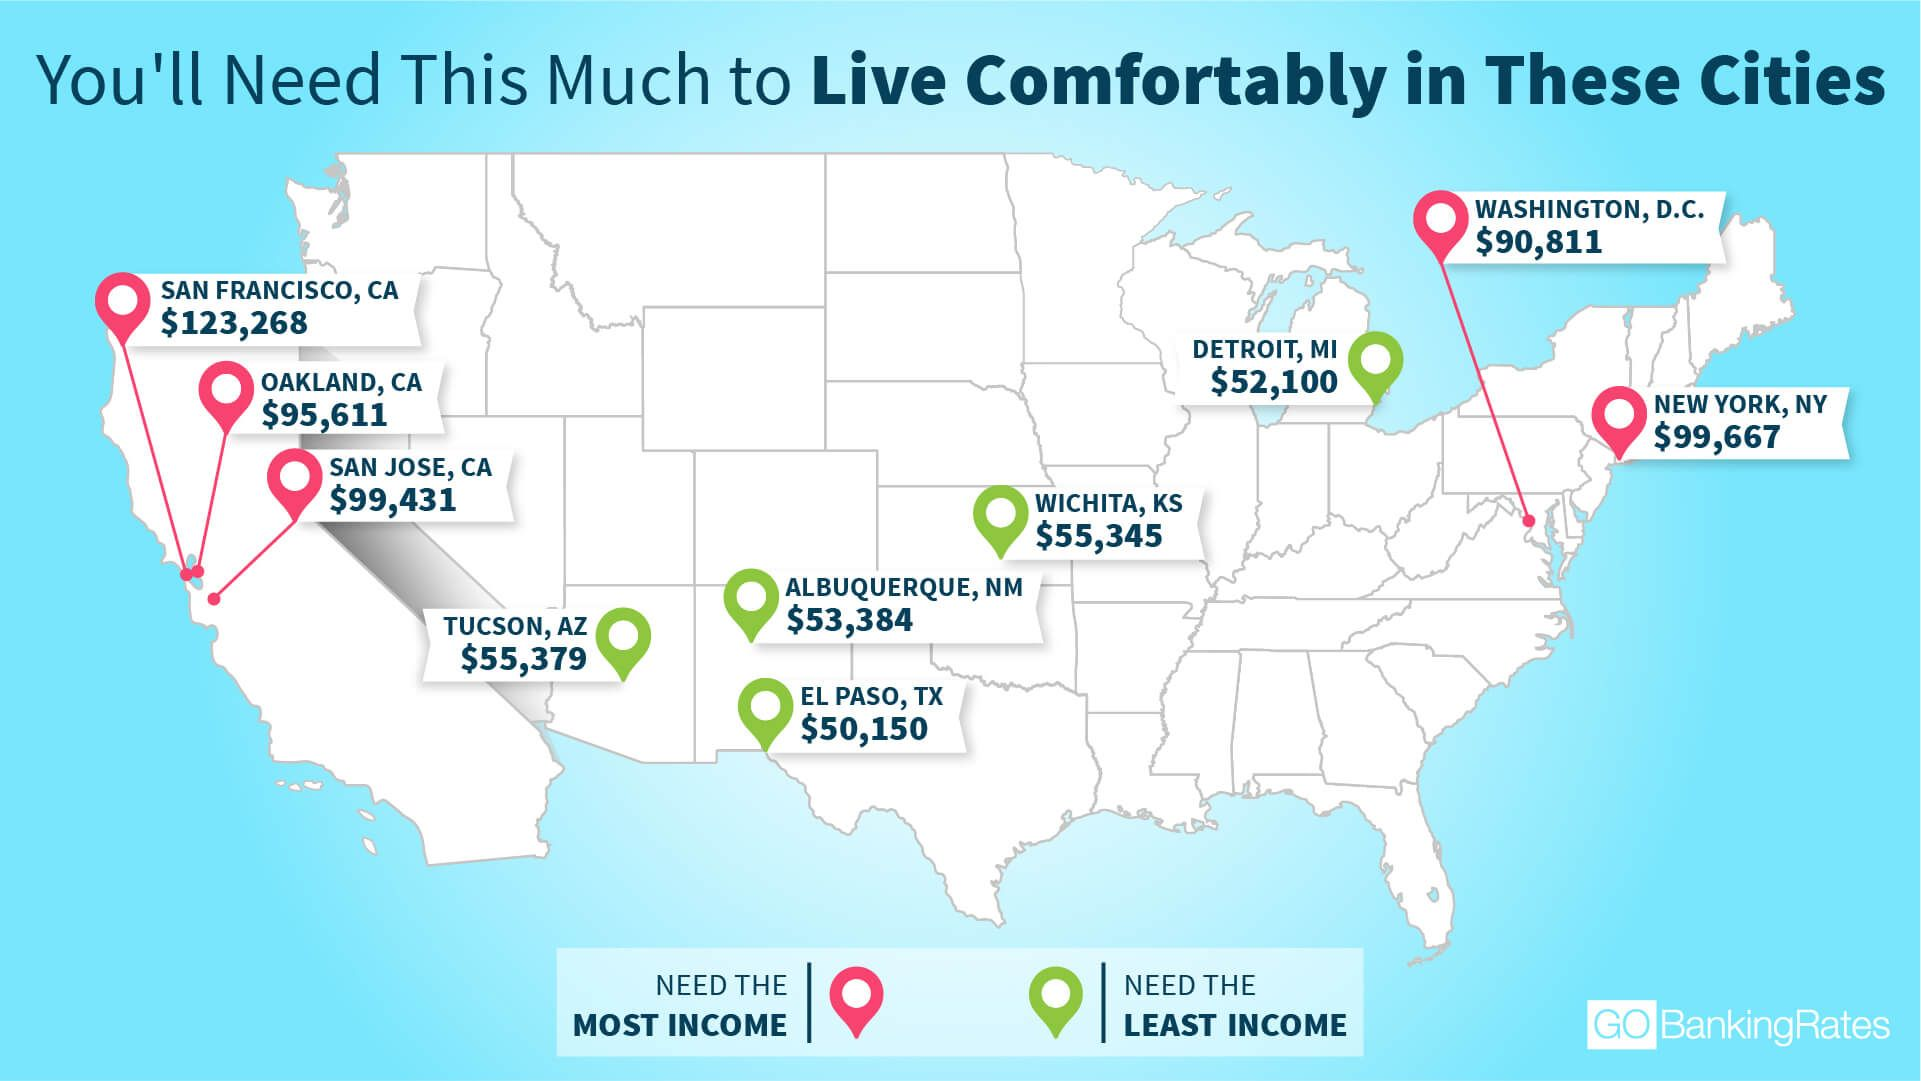 Live Comfortably in These Cities